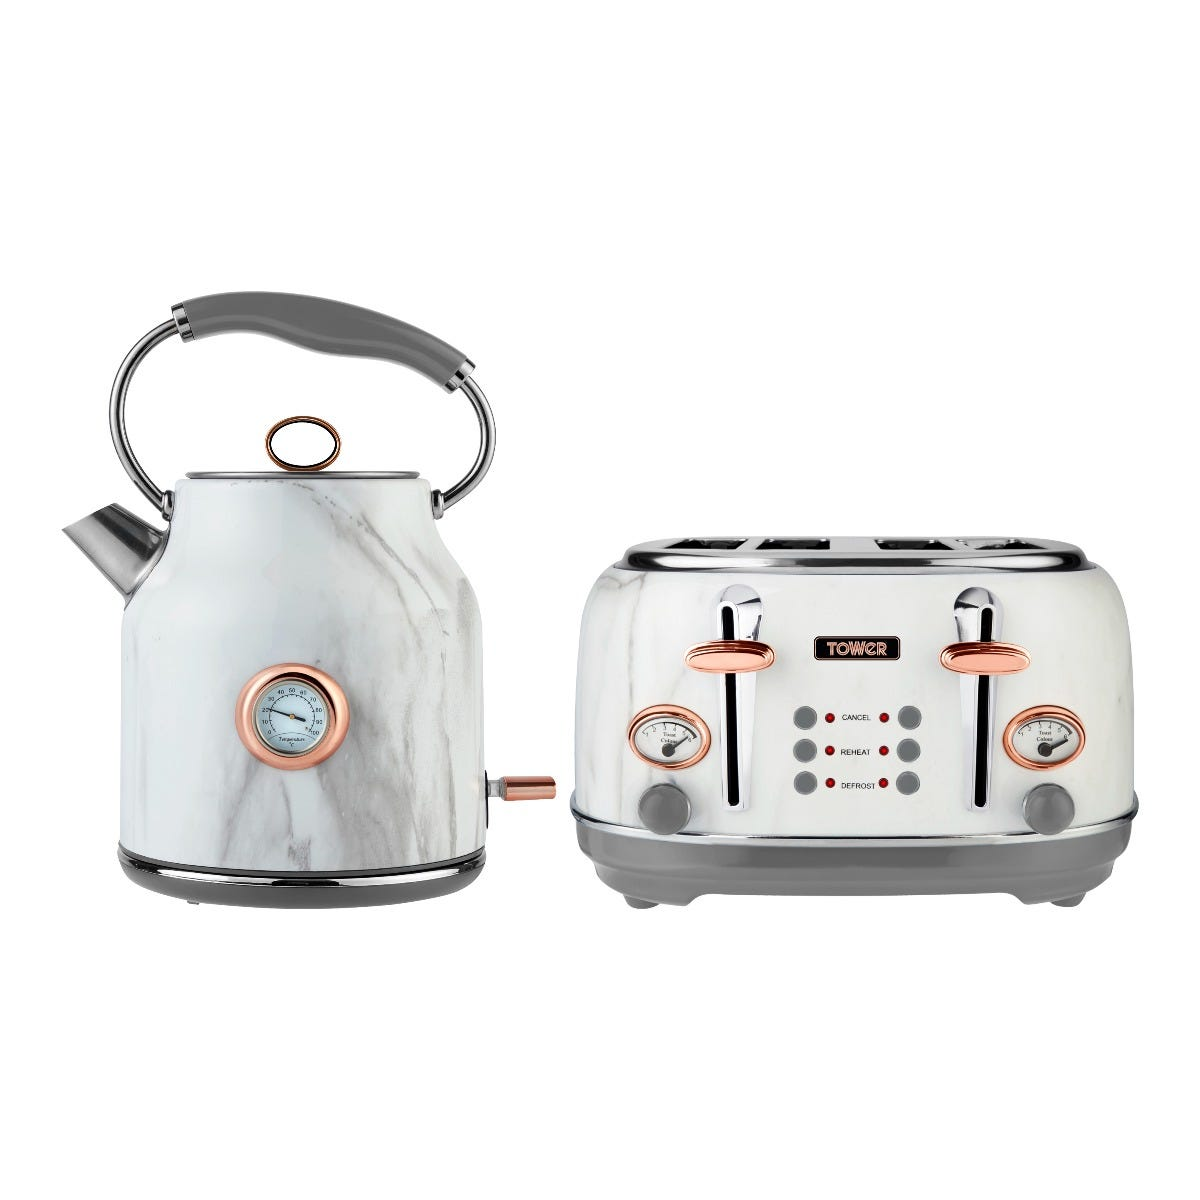 Tower 1.7L Traditional Kettle and 4 Slice Toaster Set - White Marble